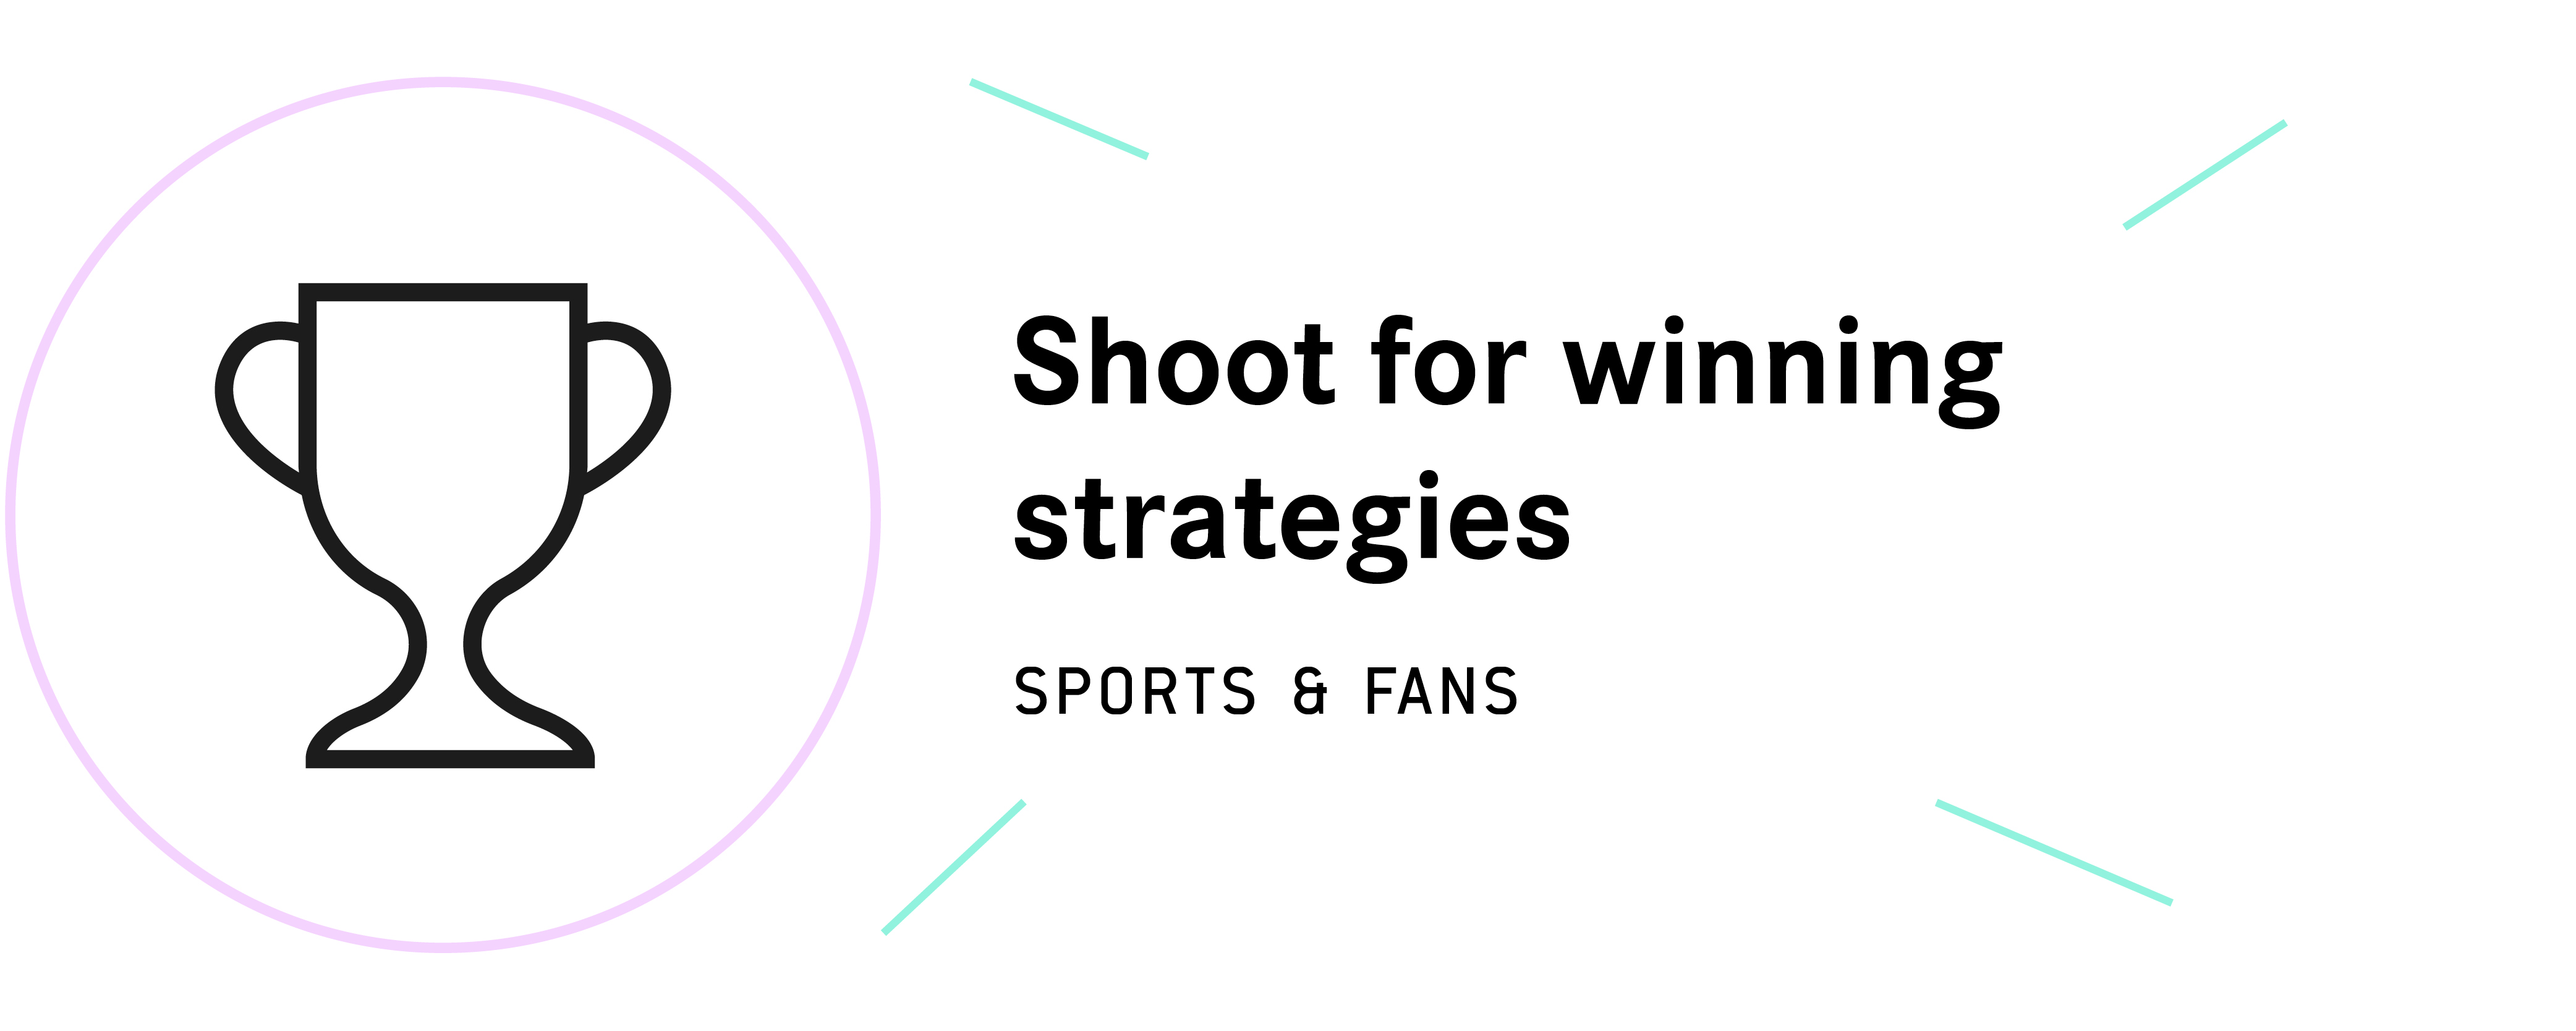 Shoot for winning strategies